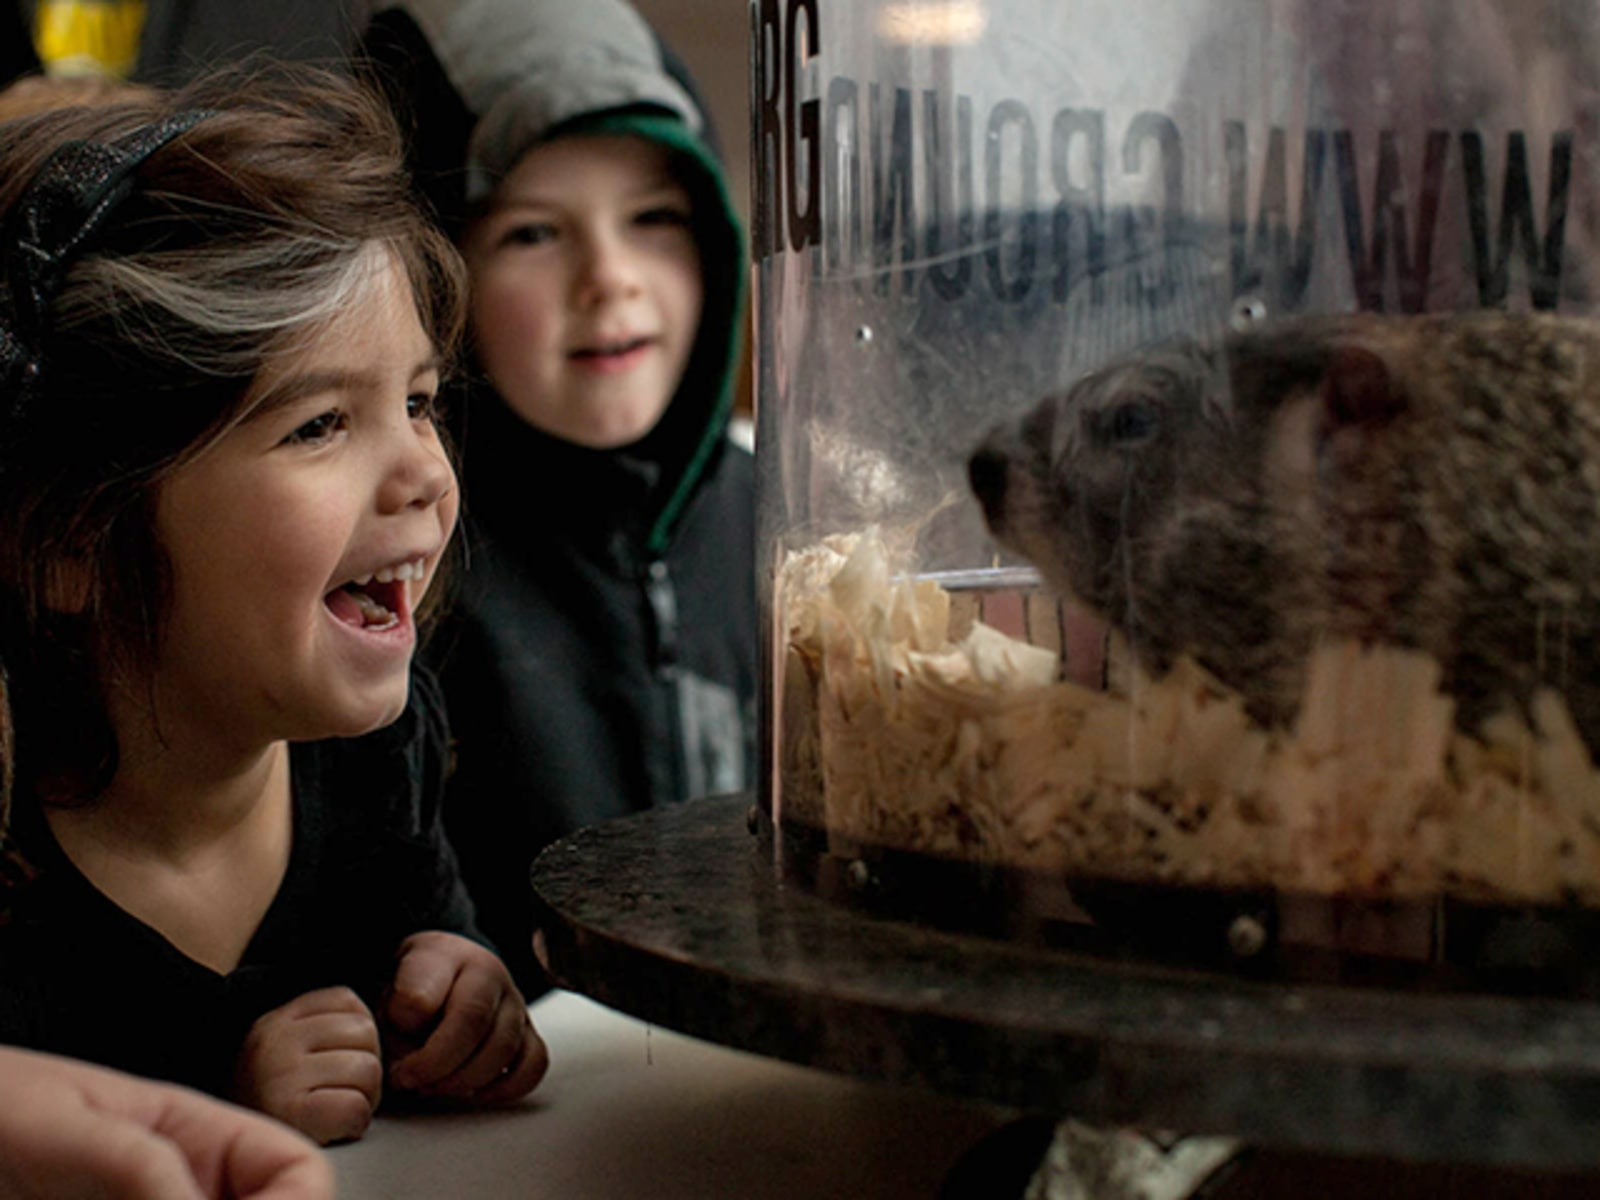 Image: Kids enjoy a sight of Punxsutawney Phil, the groundhog credited with predicting the weather